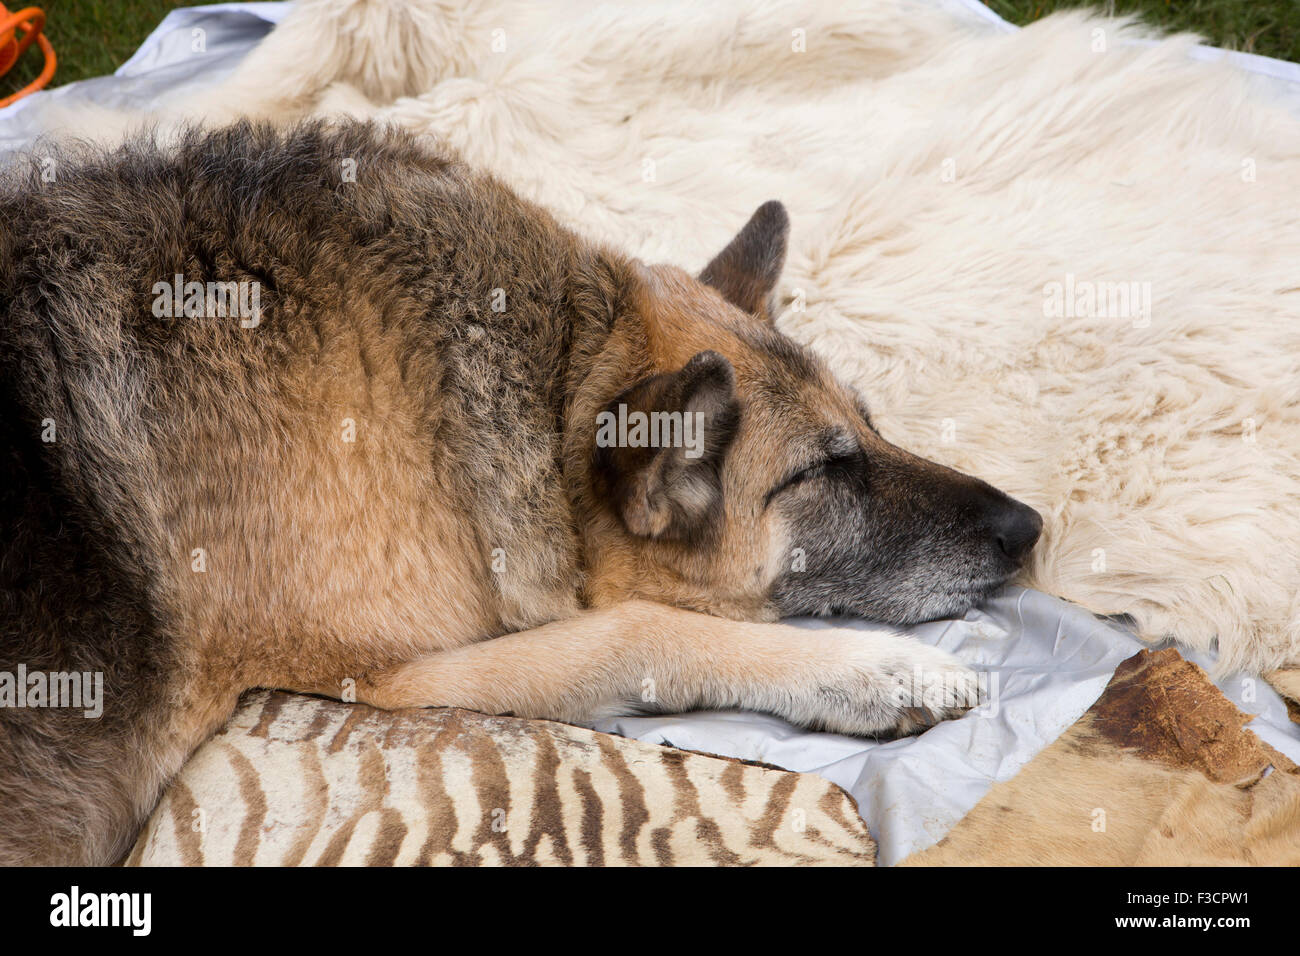 UK, England, Lincolnshire, Lincoln, Antiques Fair, German Shepherd dog asleep on zebra skin rug - Stock Image